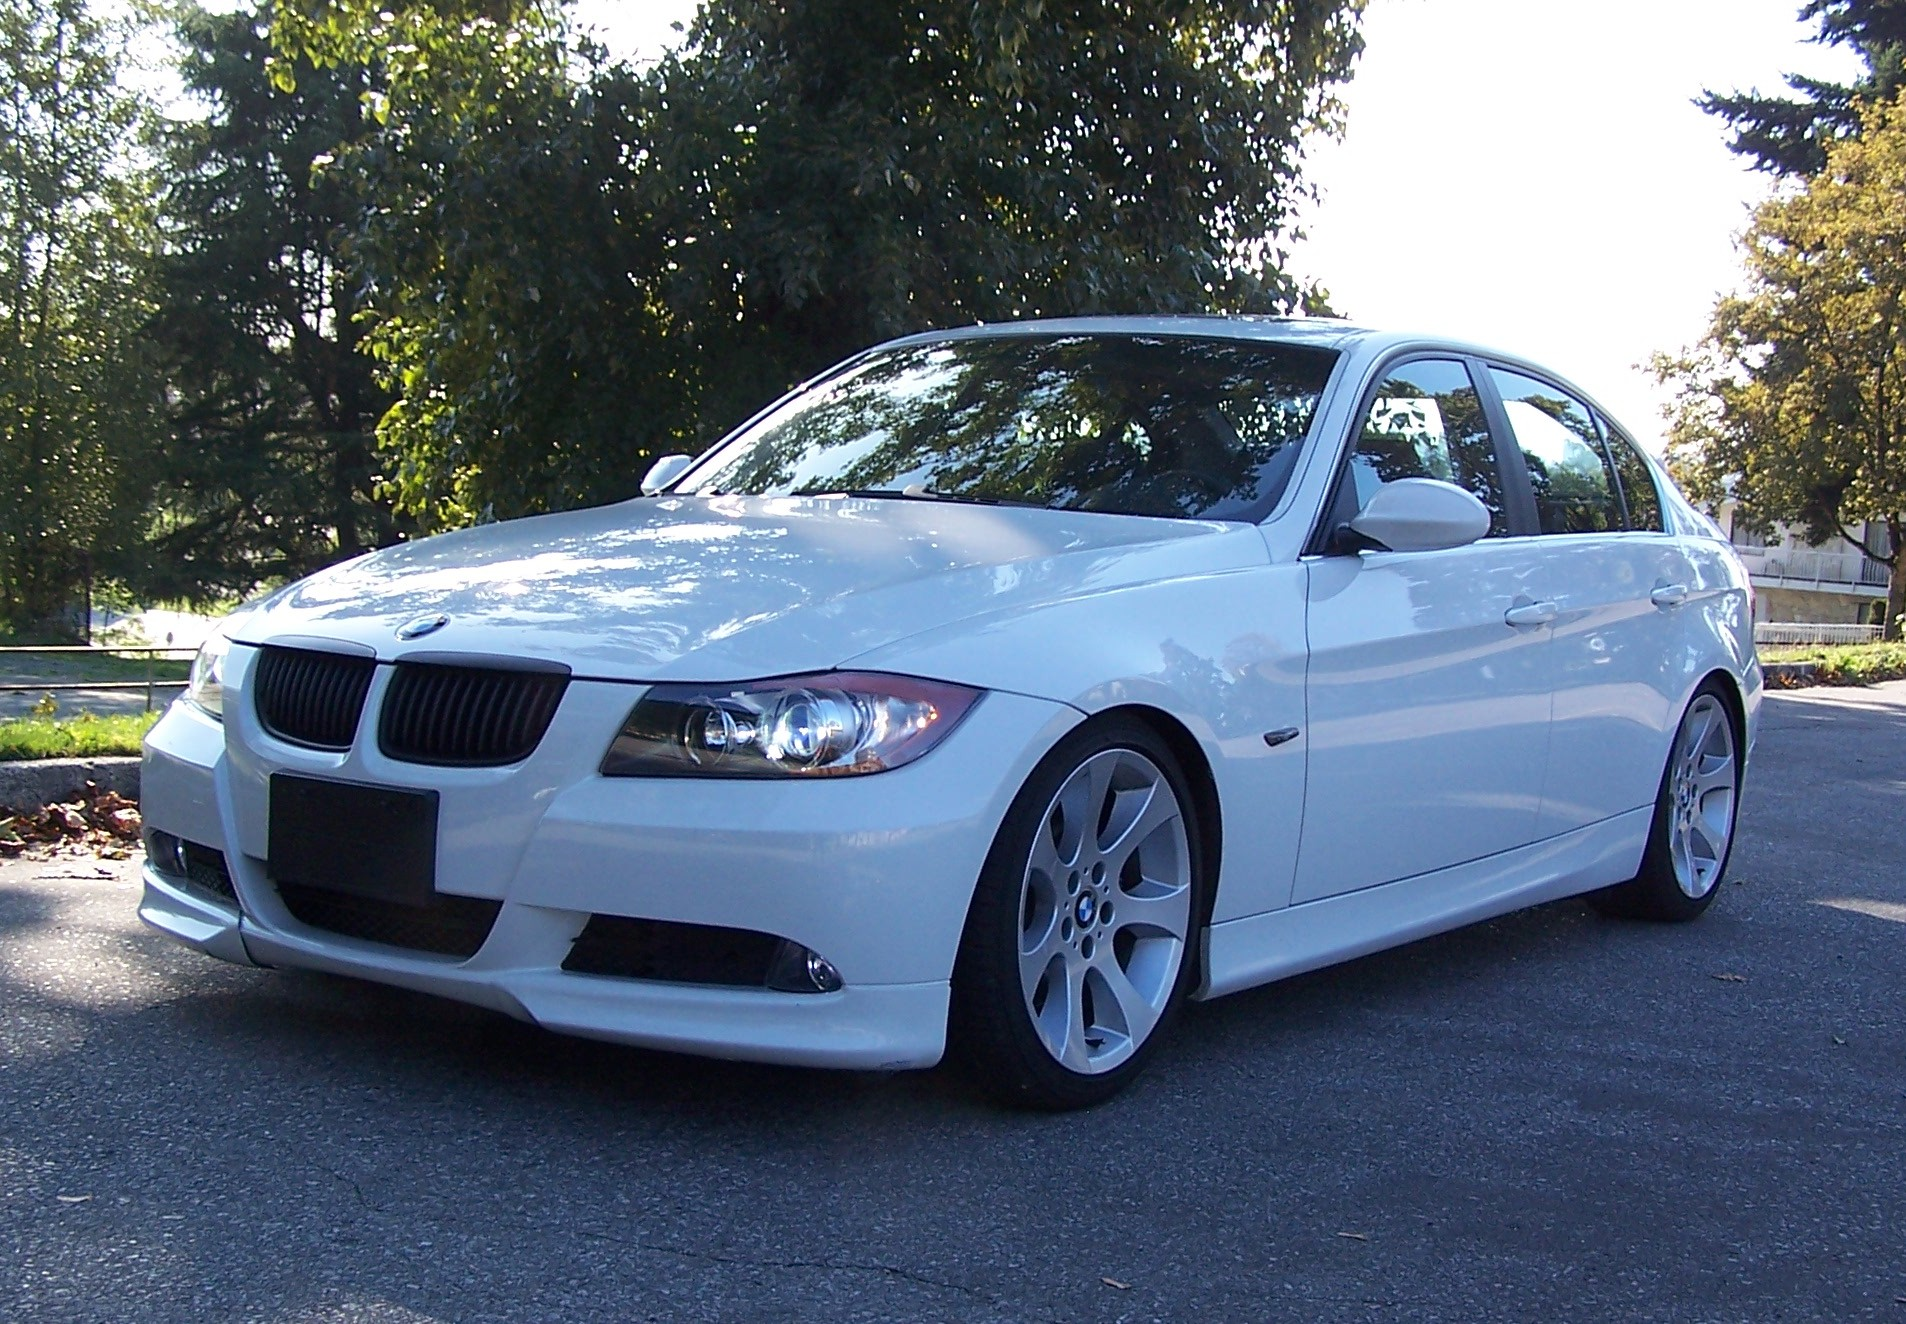 Bmw 330i 2011 Review Amazing Pictures And Images Look At The Car